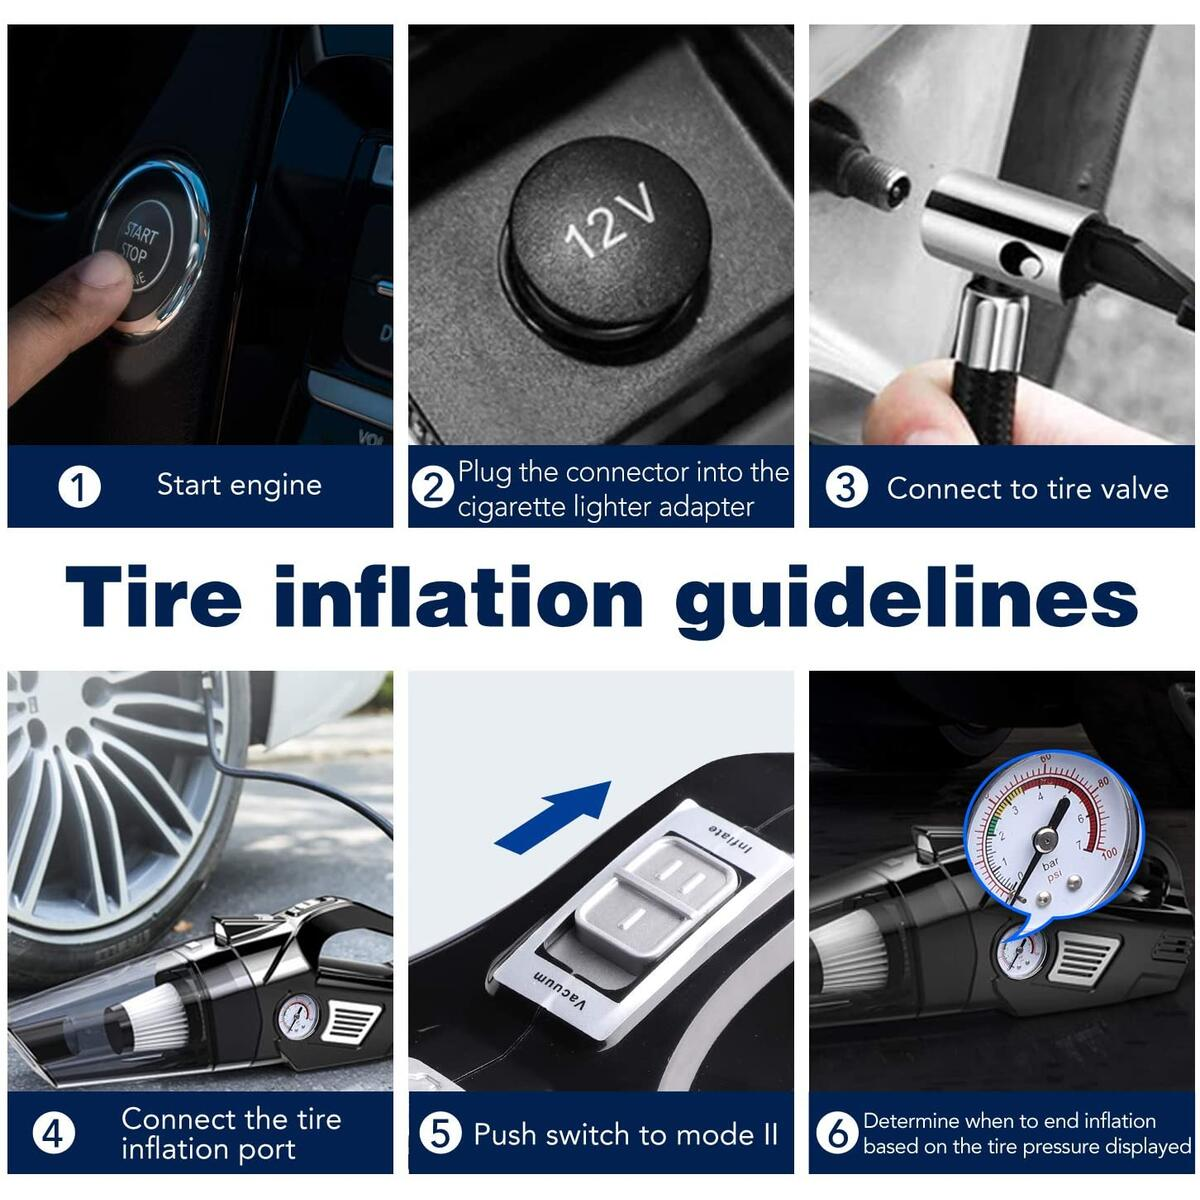 4 in 1 Air Compressor, Car Vacuum Cleaner, Multifunctional High Power 120W Air Compressor Tire inflator Handheld Car Vacuum High Power 5500PA Handheld Vacuum w/Light, 10 FT Power Cord, for Wet/Dry